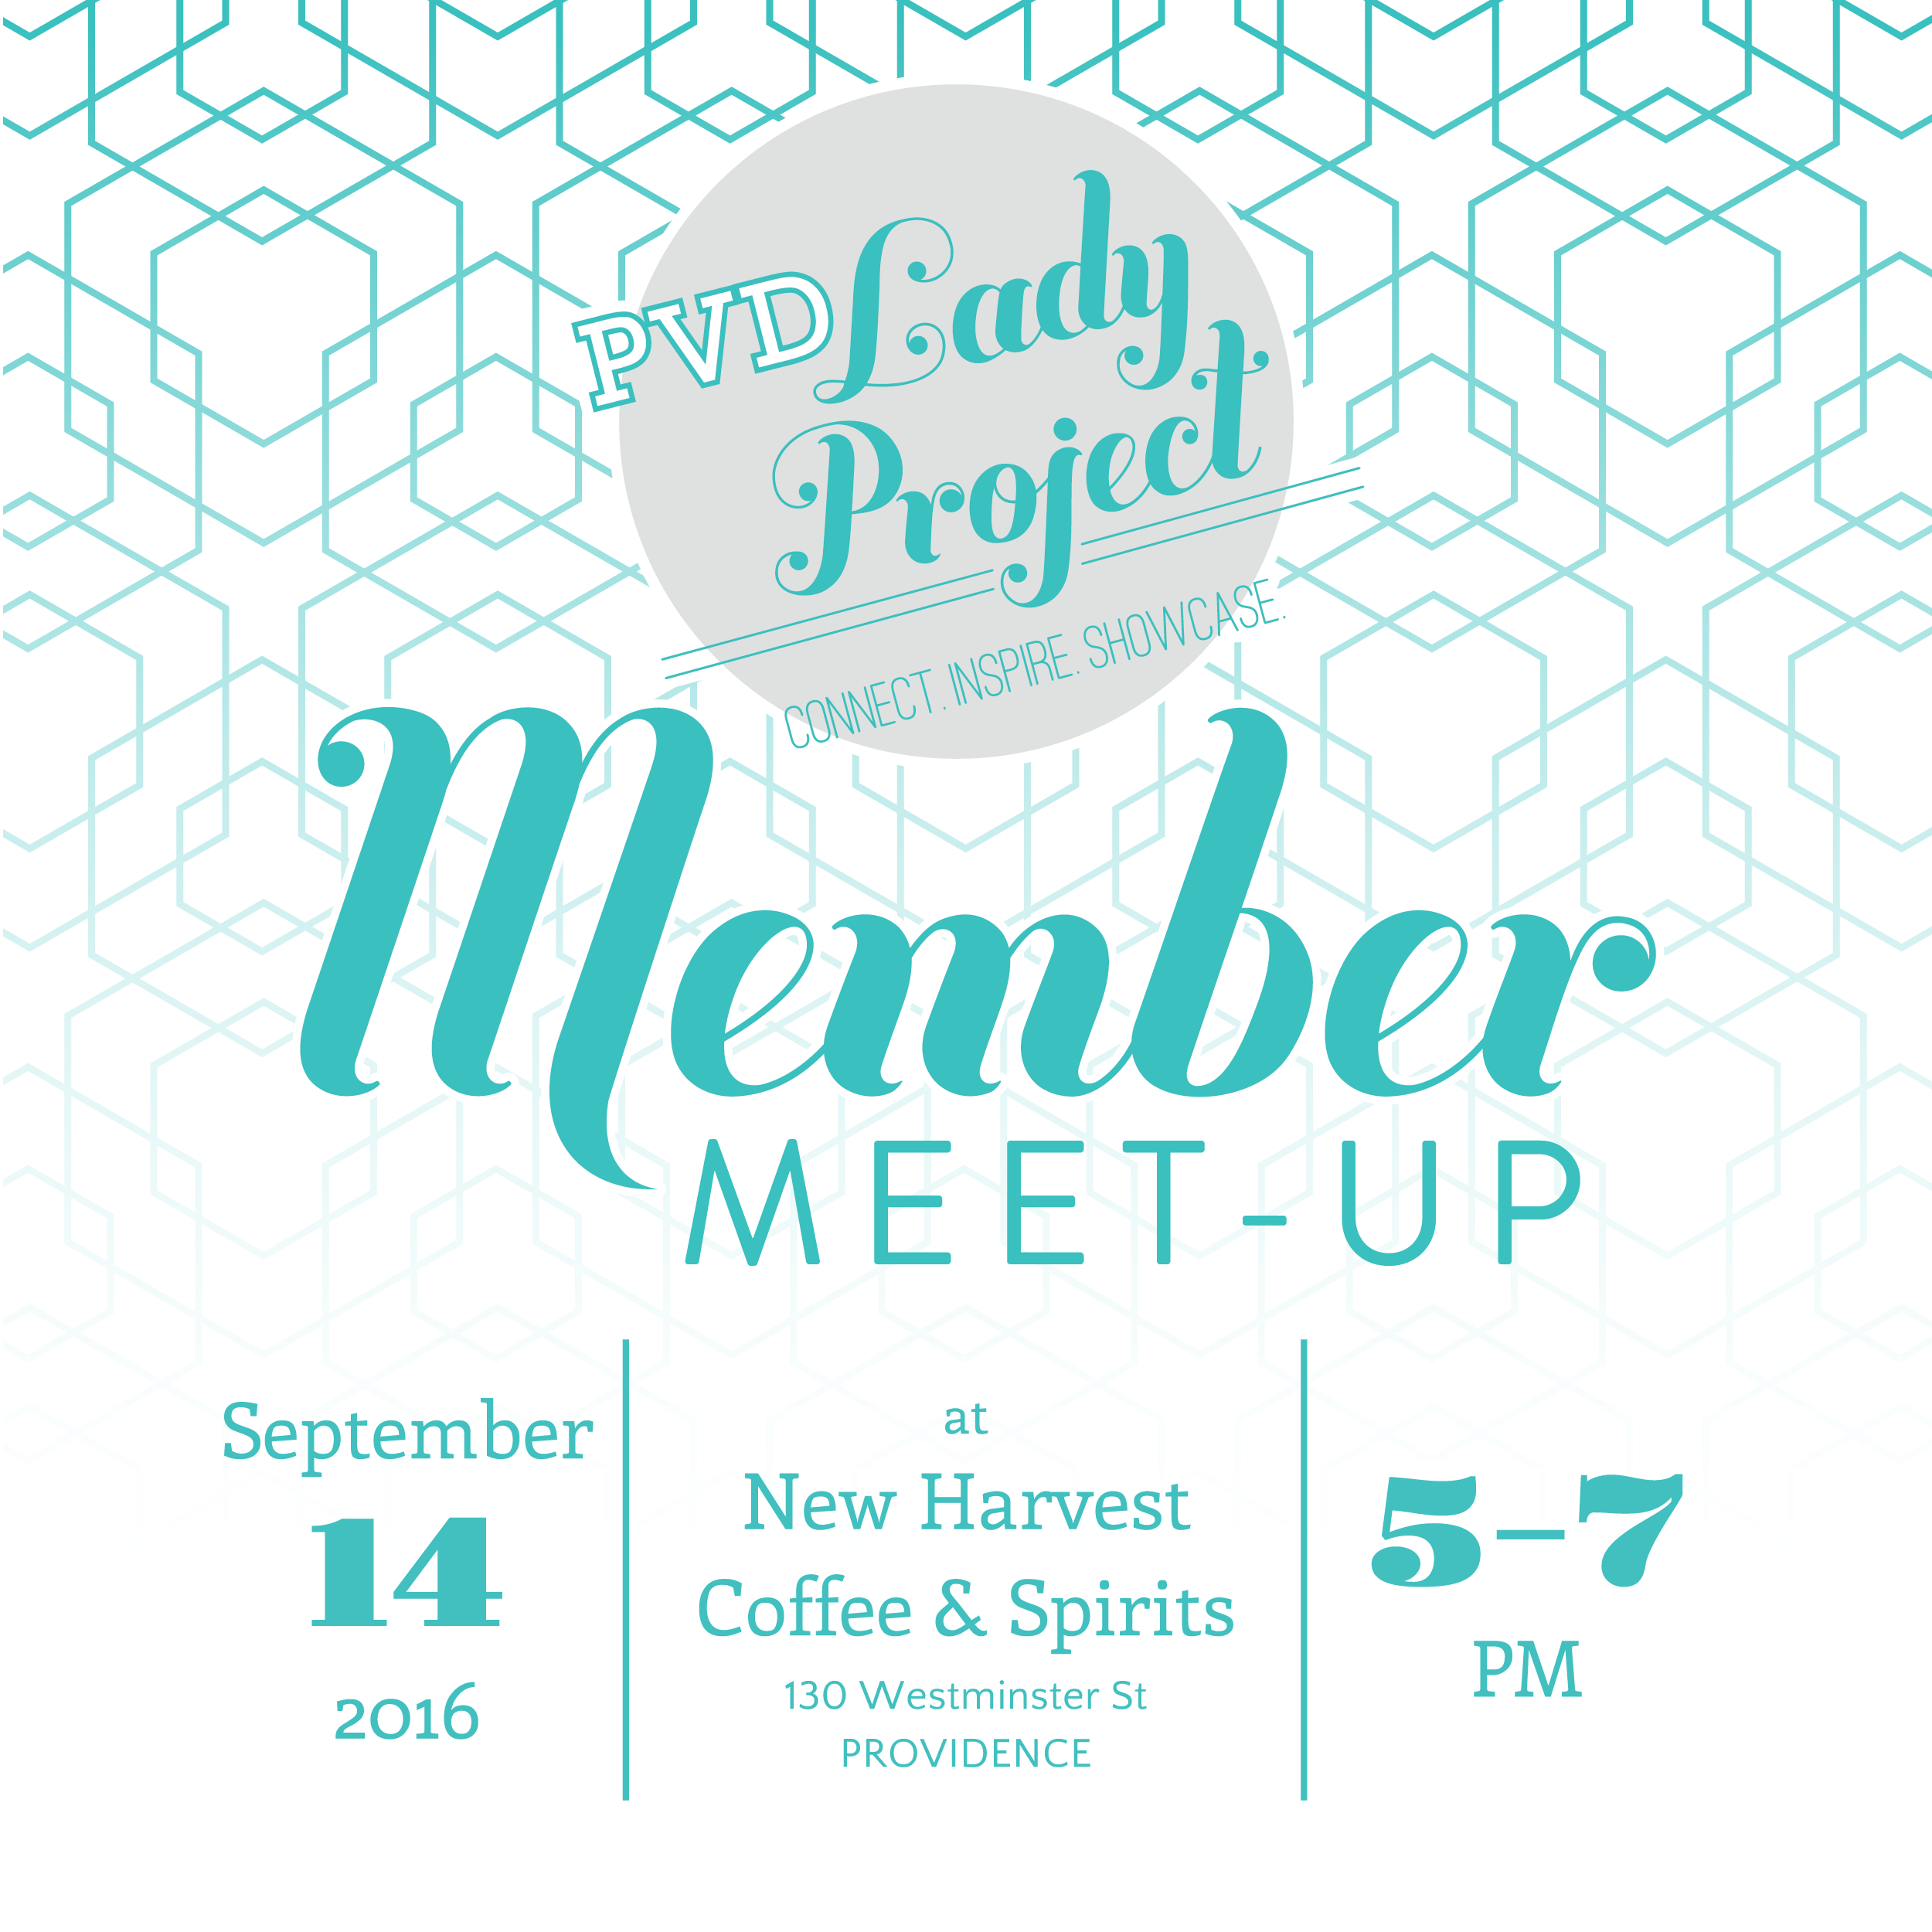 Member Meet-Up September 14, 2016 at New Harvest